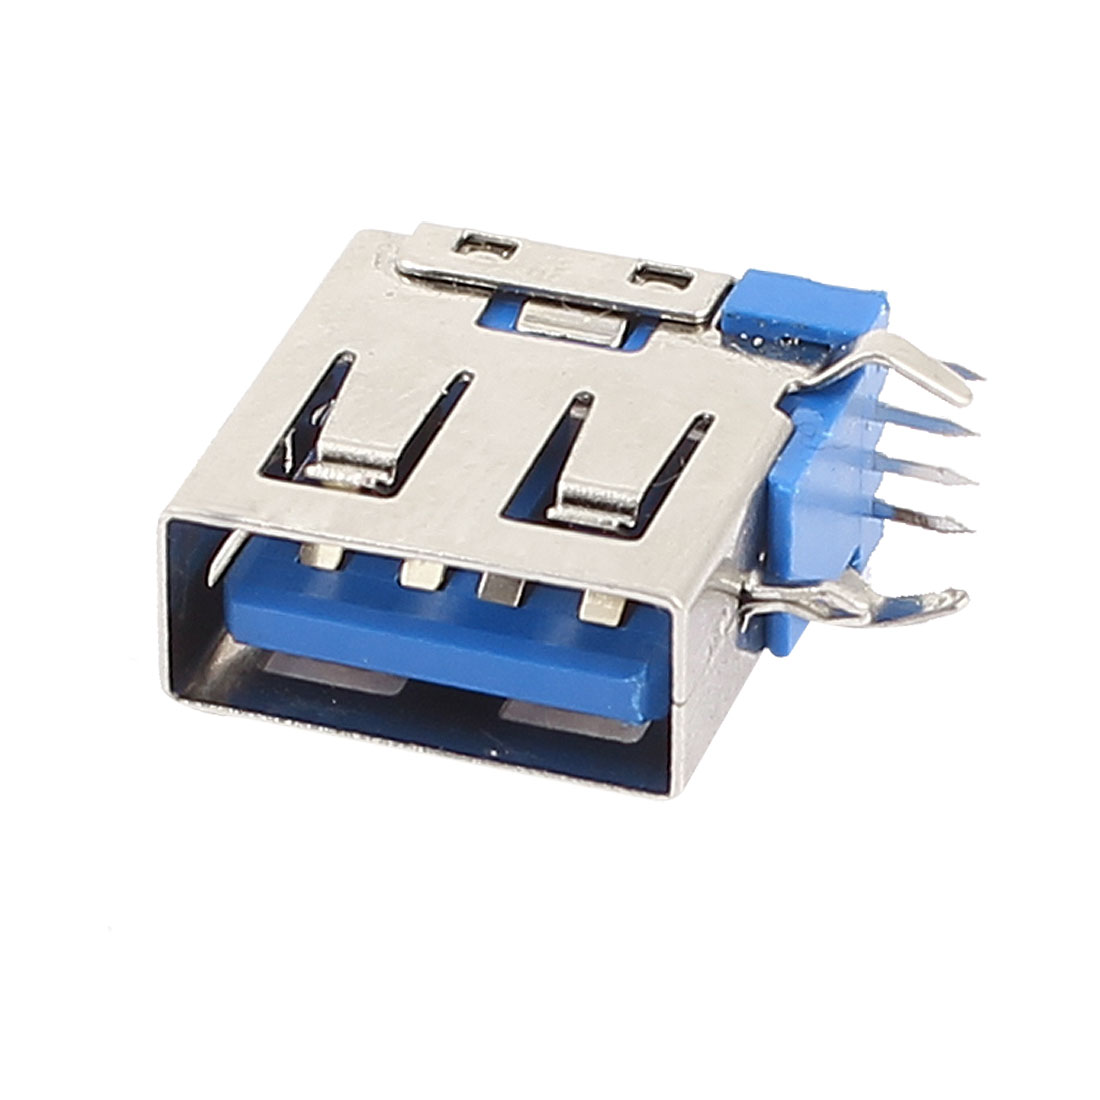 USB 3.0 Type A Female Port 4 Pin 90 Degree DIP Panel Mount Socket Connector